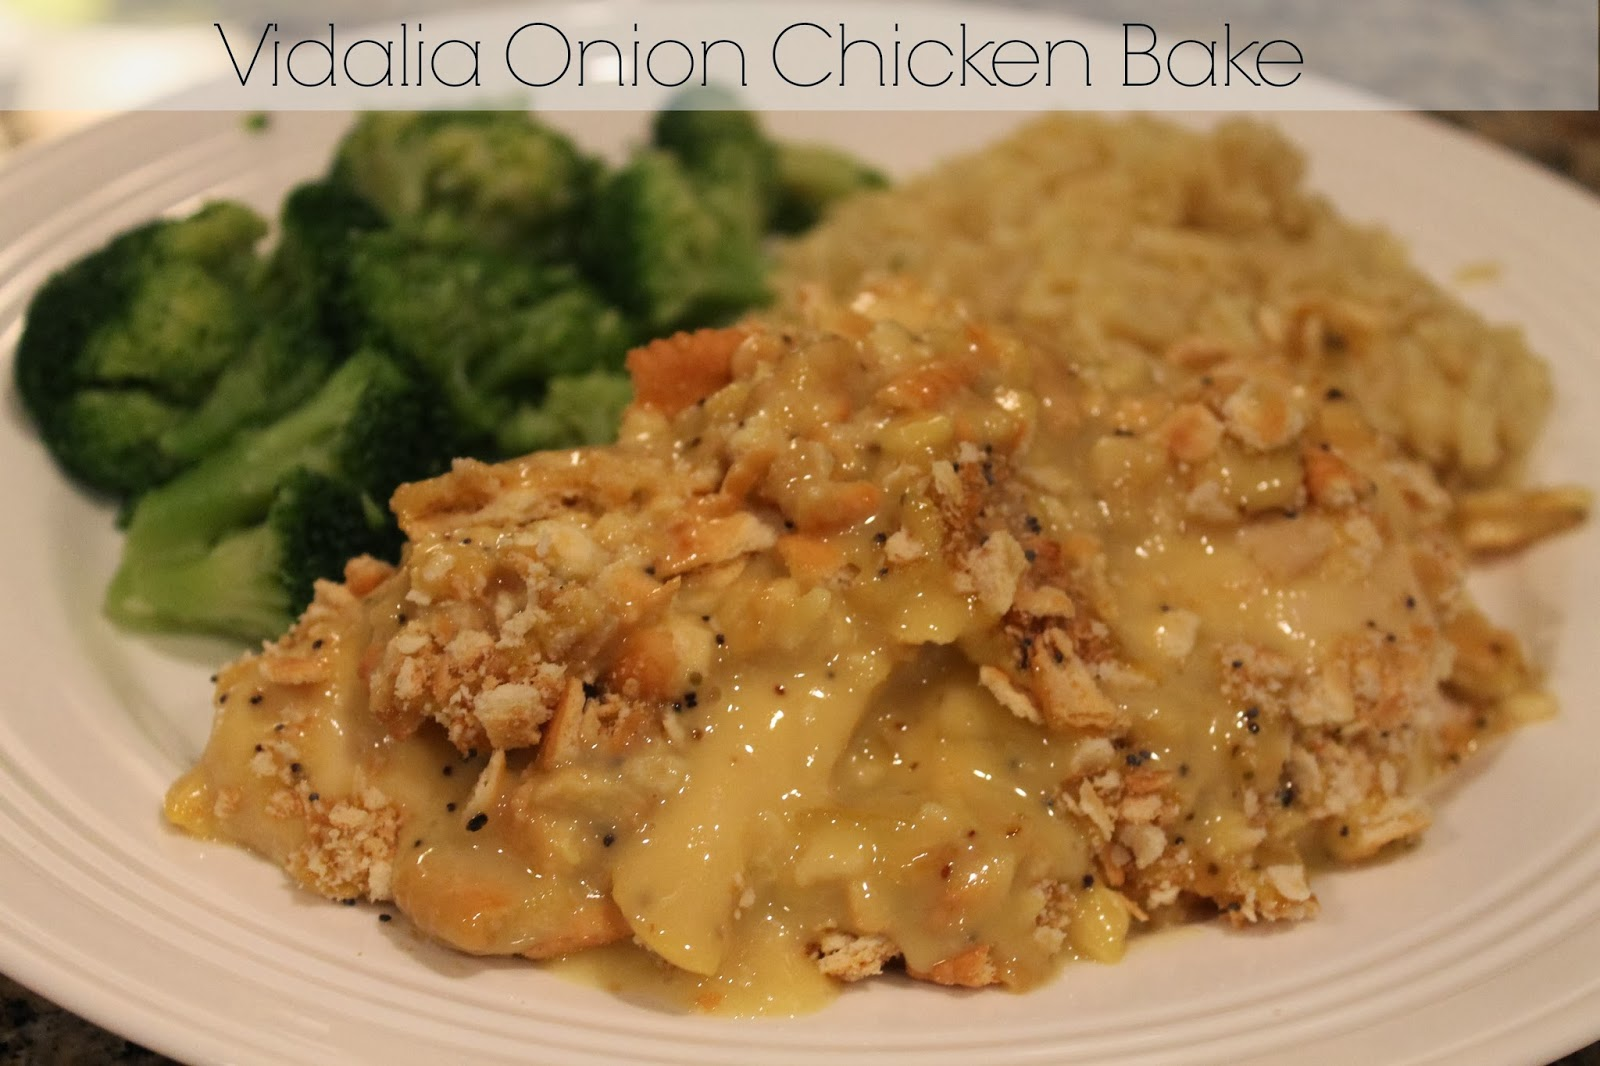 ... baked onion rings baked onion rings chicken with vidalia onion sauce